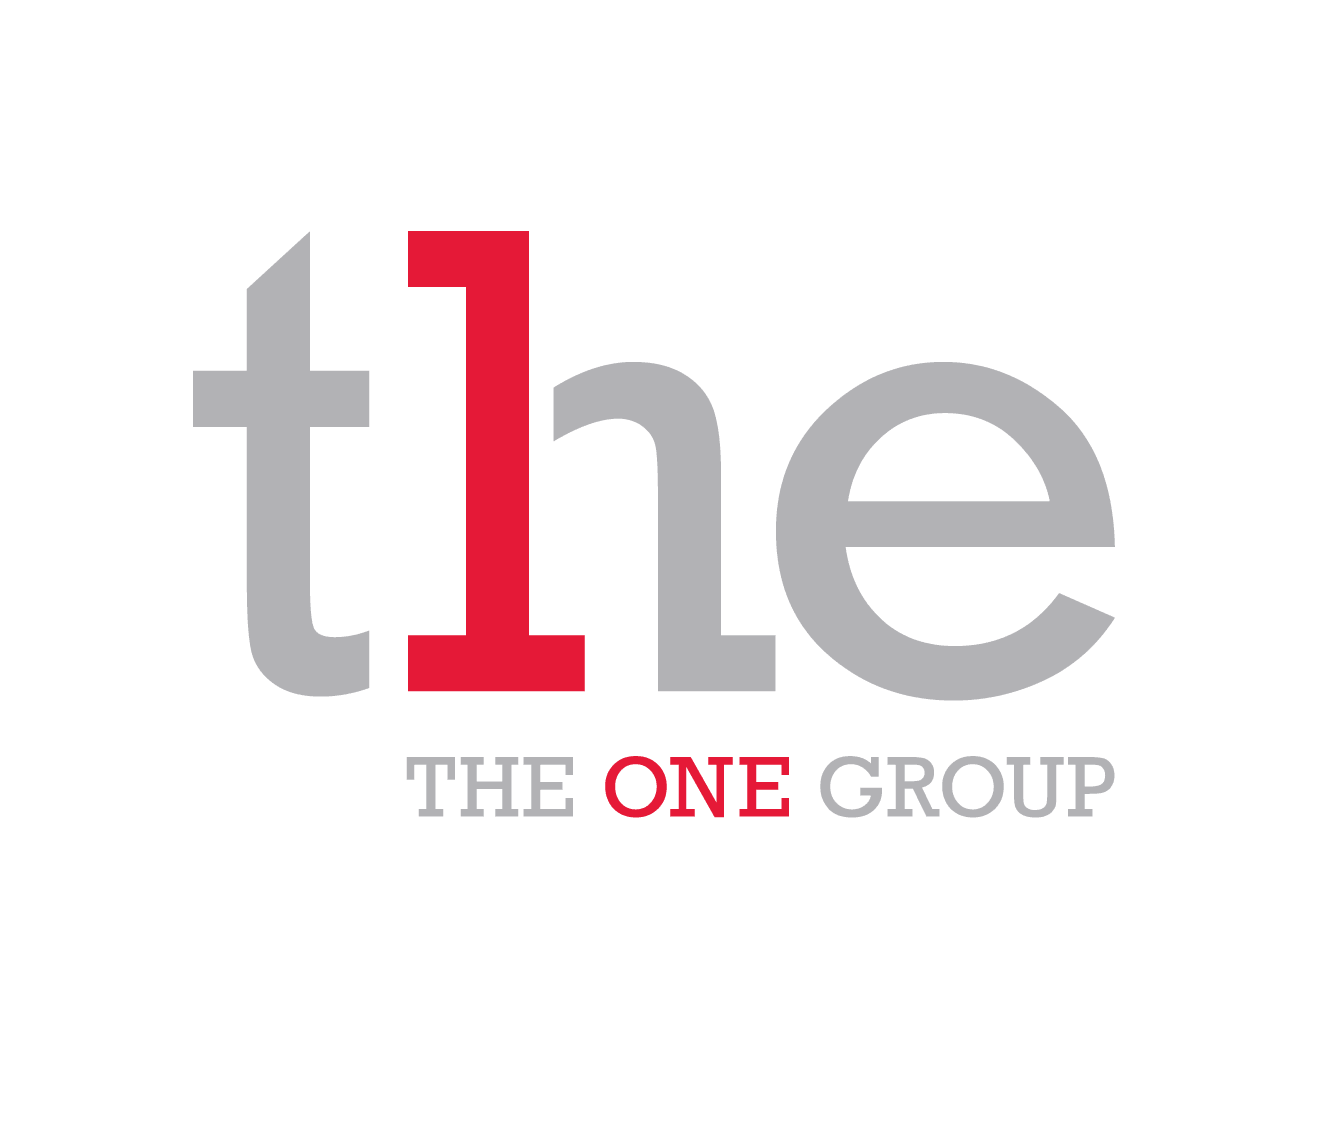 The ONE Group